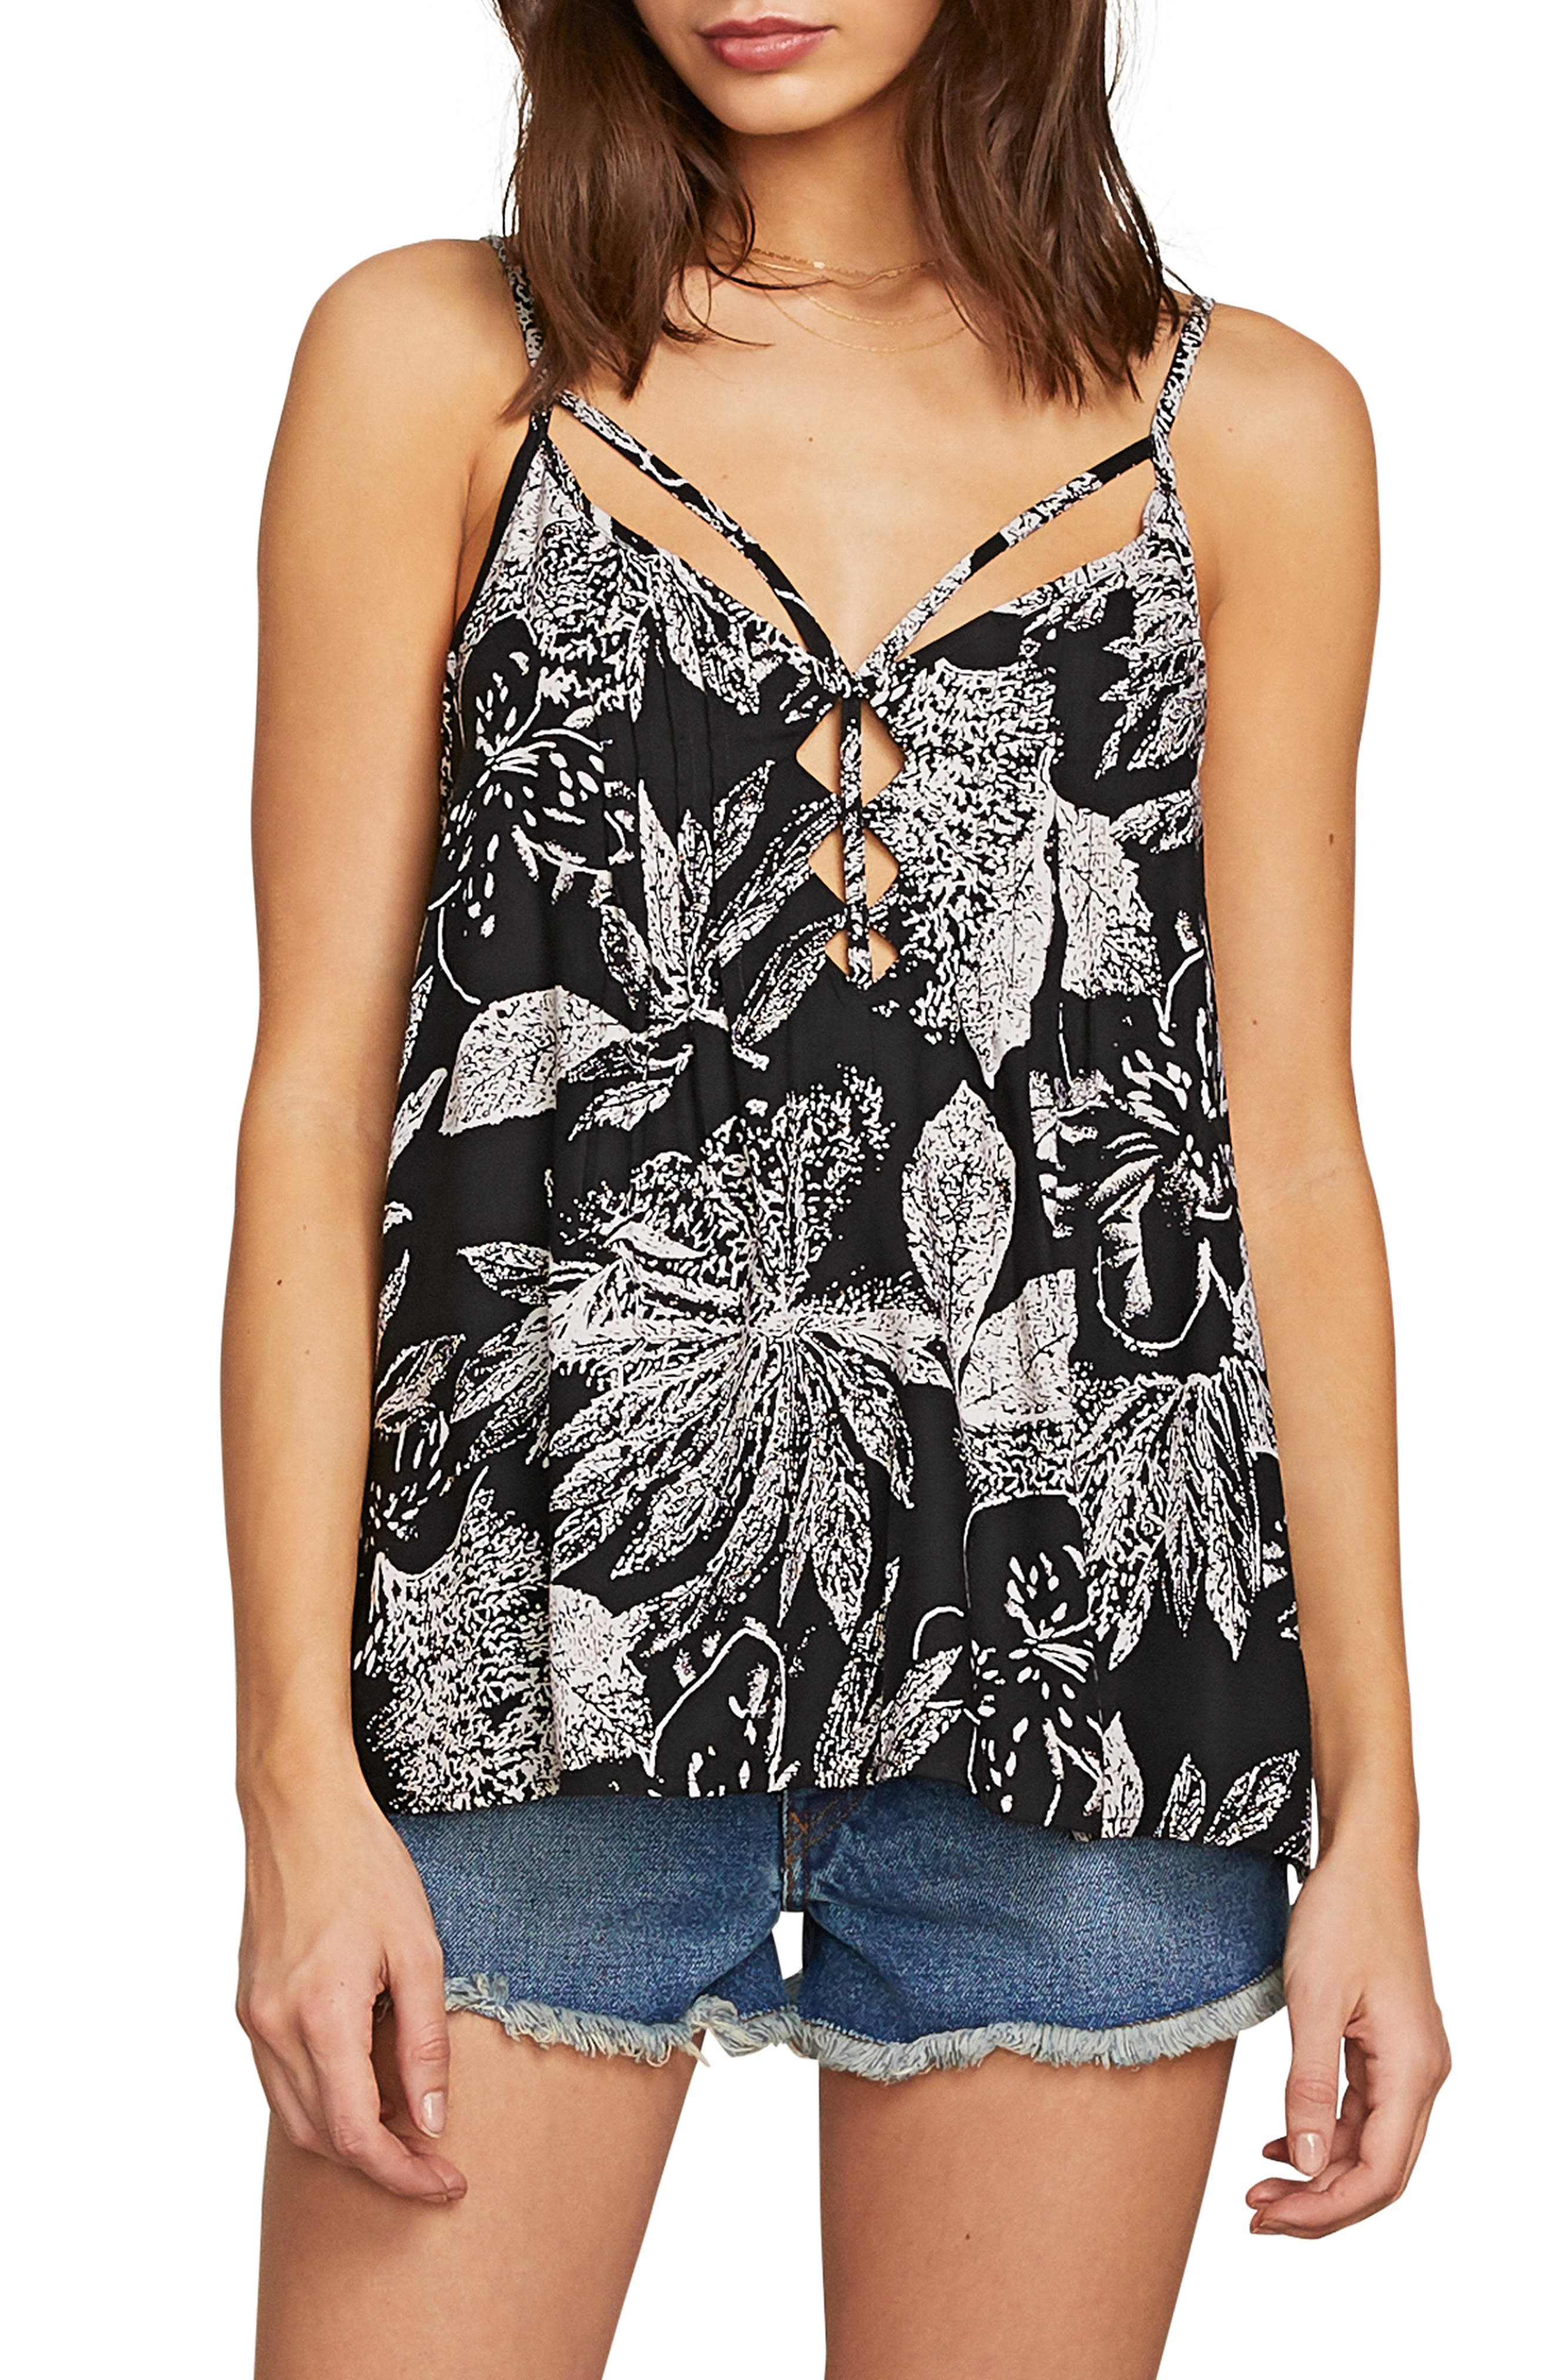 Do Tell Strappy Camisole,                         Main,                         color, BLACK COMBO